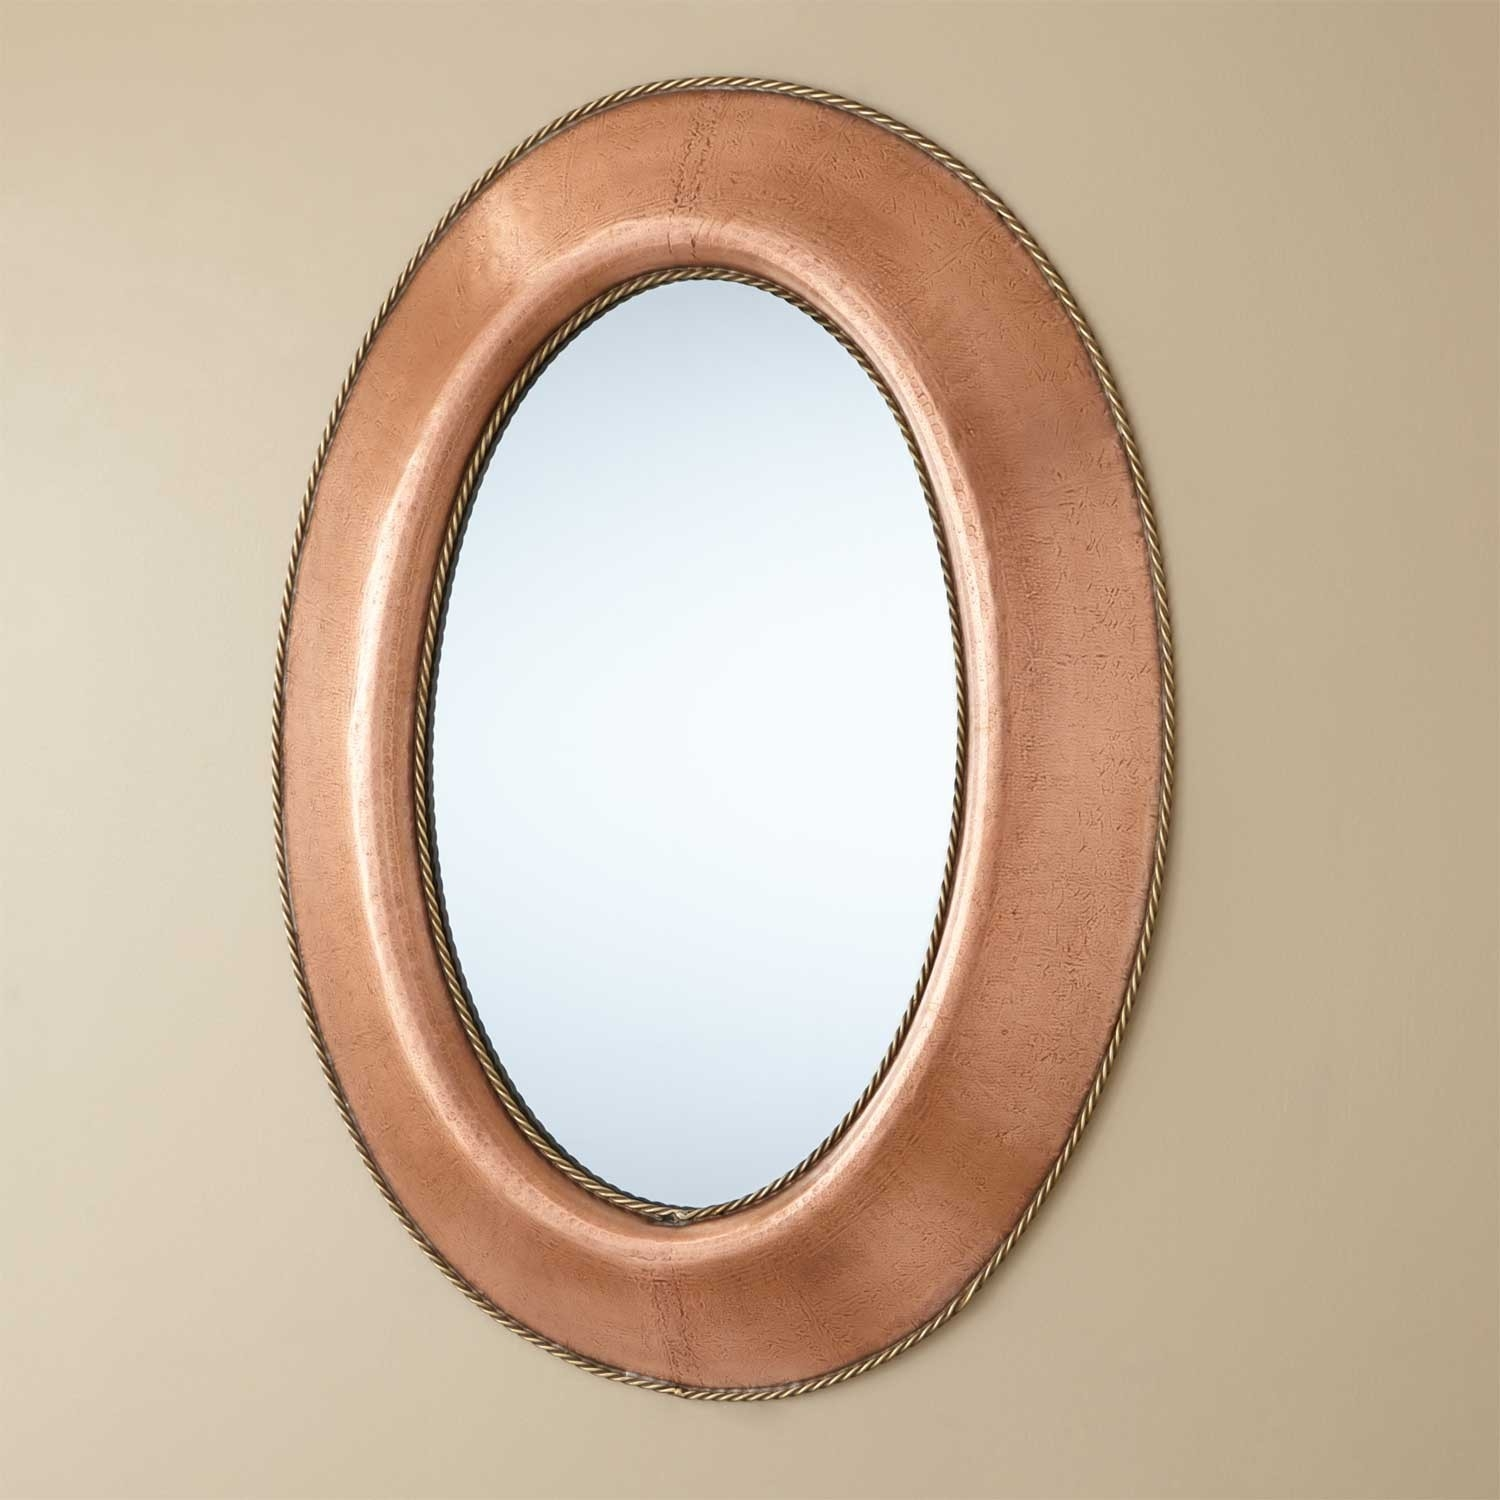 Copper Framed Bathroom Mirrorscopper framed bathroom mirrors home